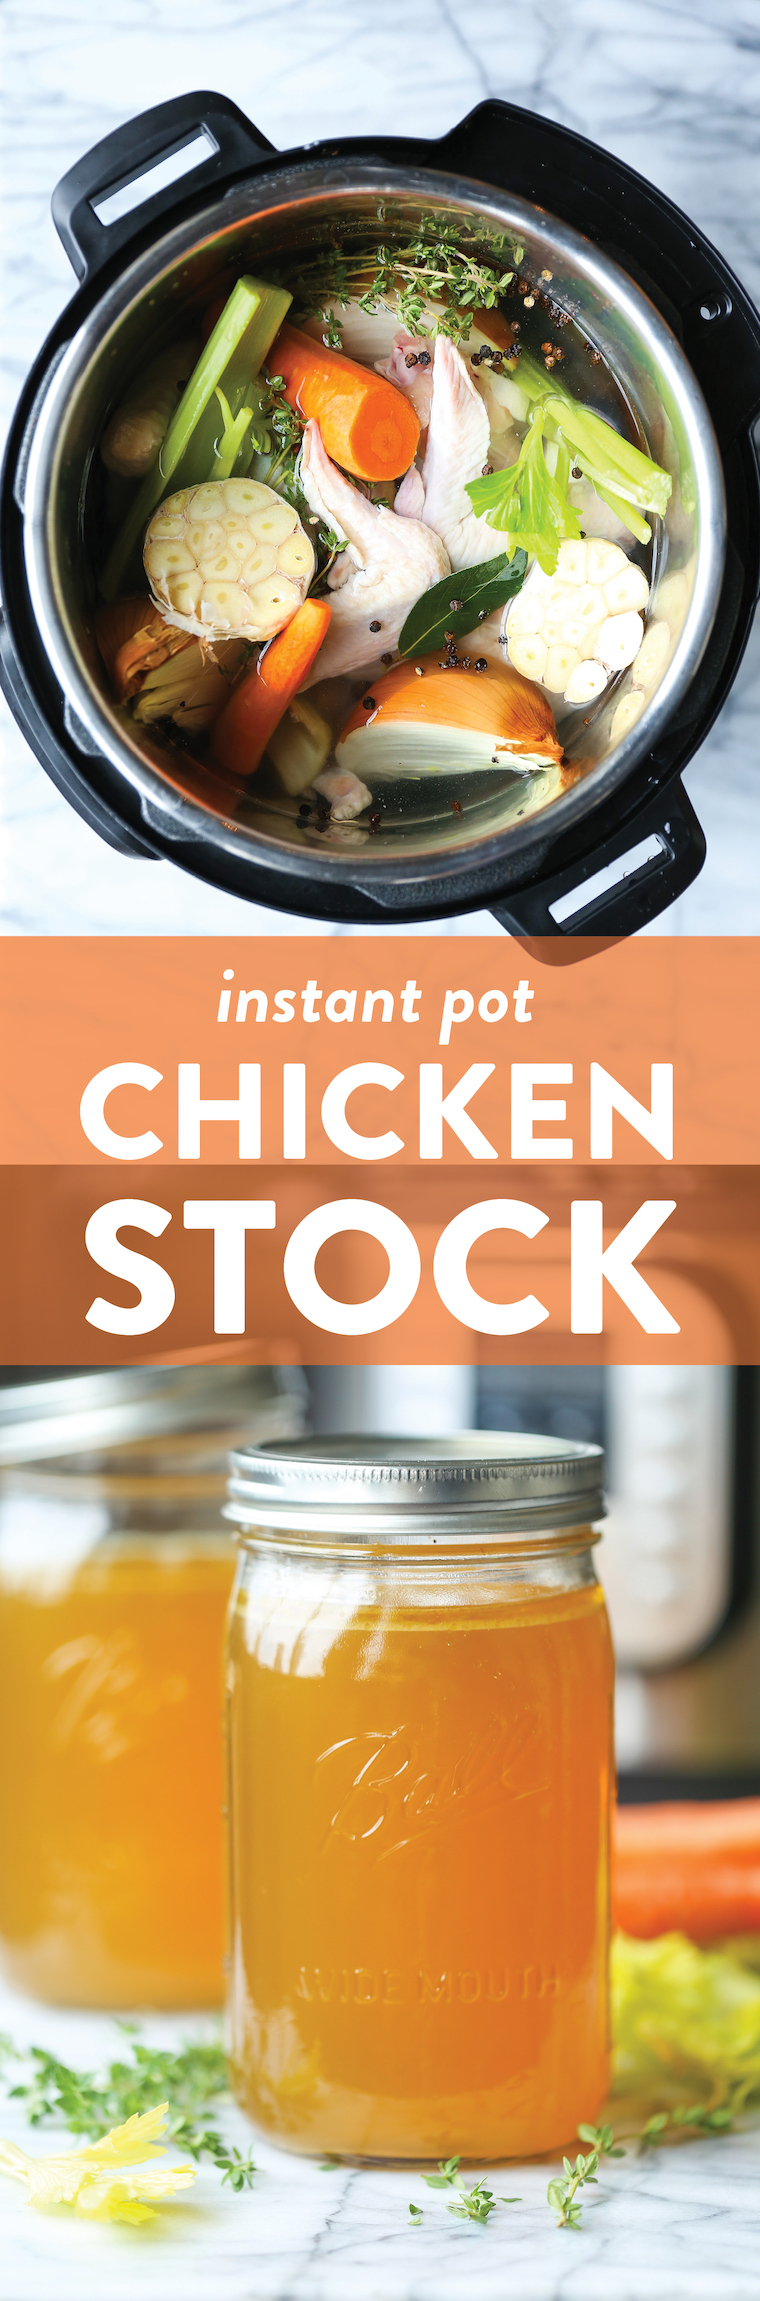 Instant Pot Chicken Stock - Now you can make the best homemade chicken stock in just 45 min! Freeze for up to 3 months. Perfect for stews, soups and sauces!